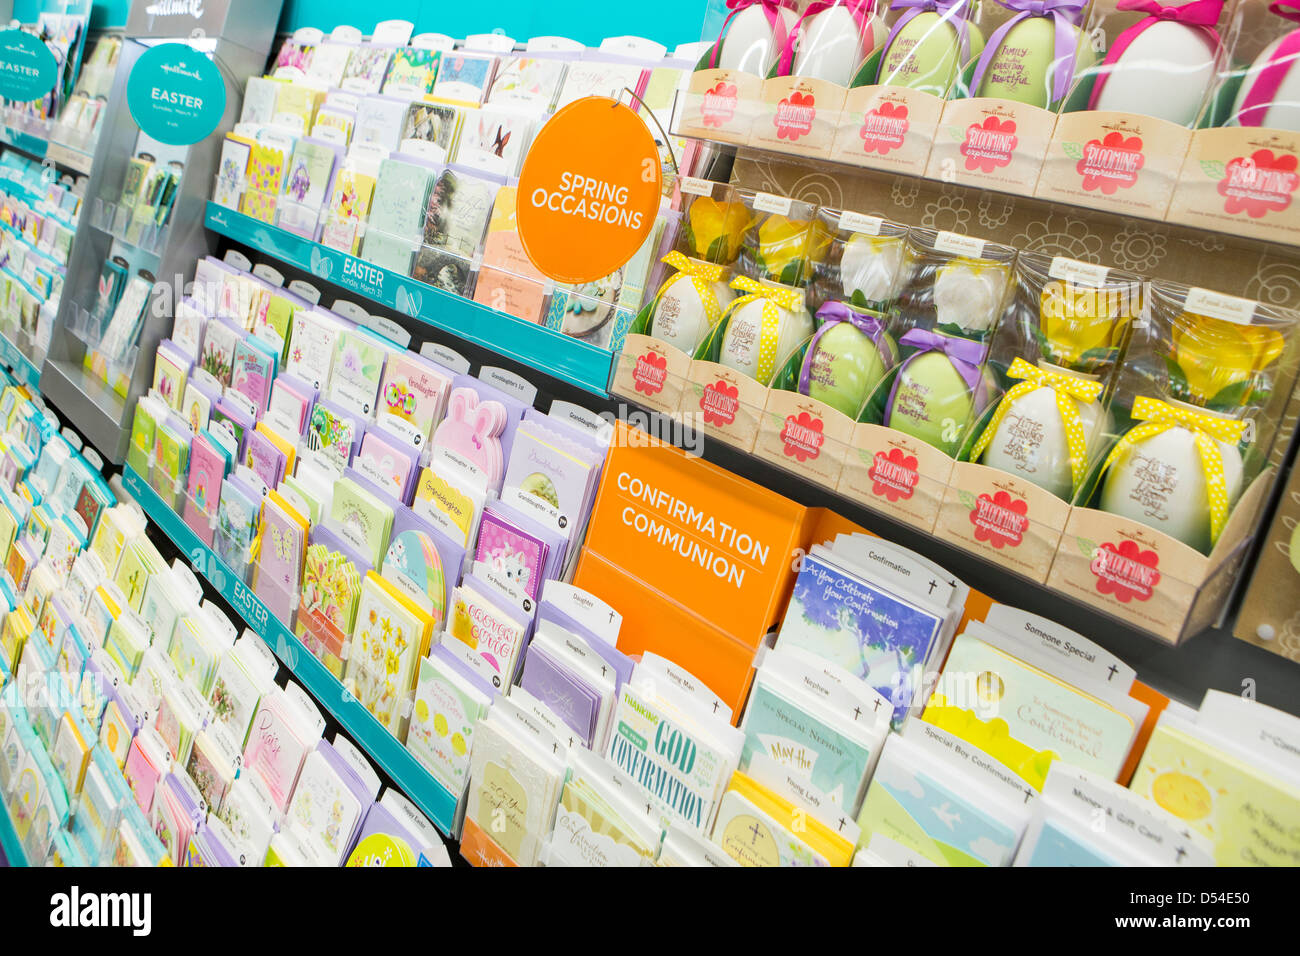 Greeting card display stock photos greeting card display stock hallmark greeting cards on display at a walgreens flagship store stock image m4hsunfo